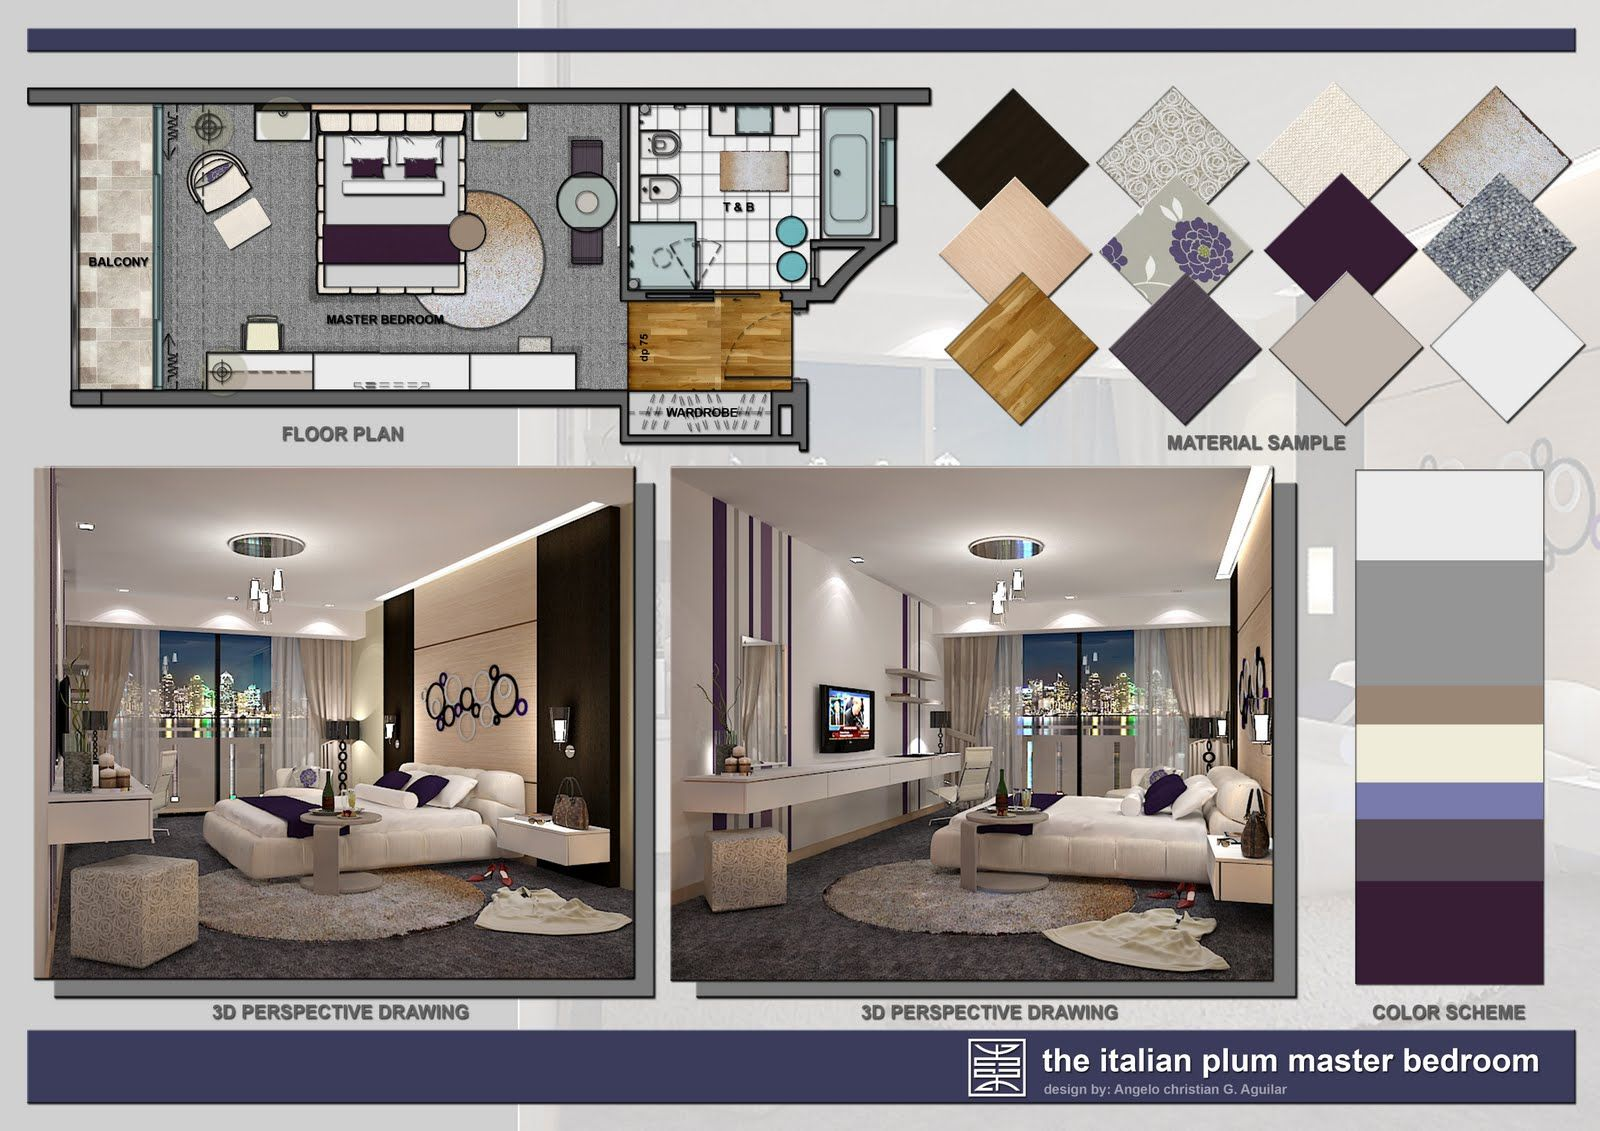 Ordinary design my room online part 2 interior design for Apartment design ppt